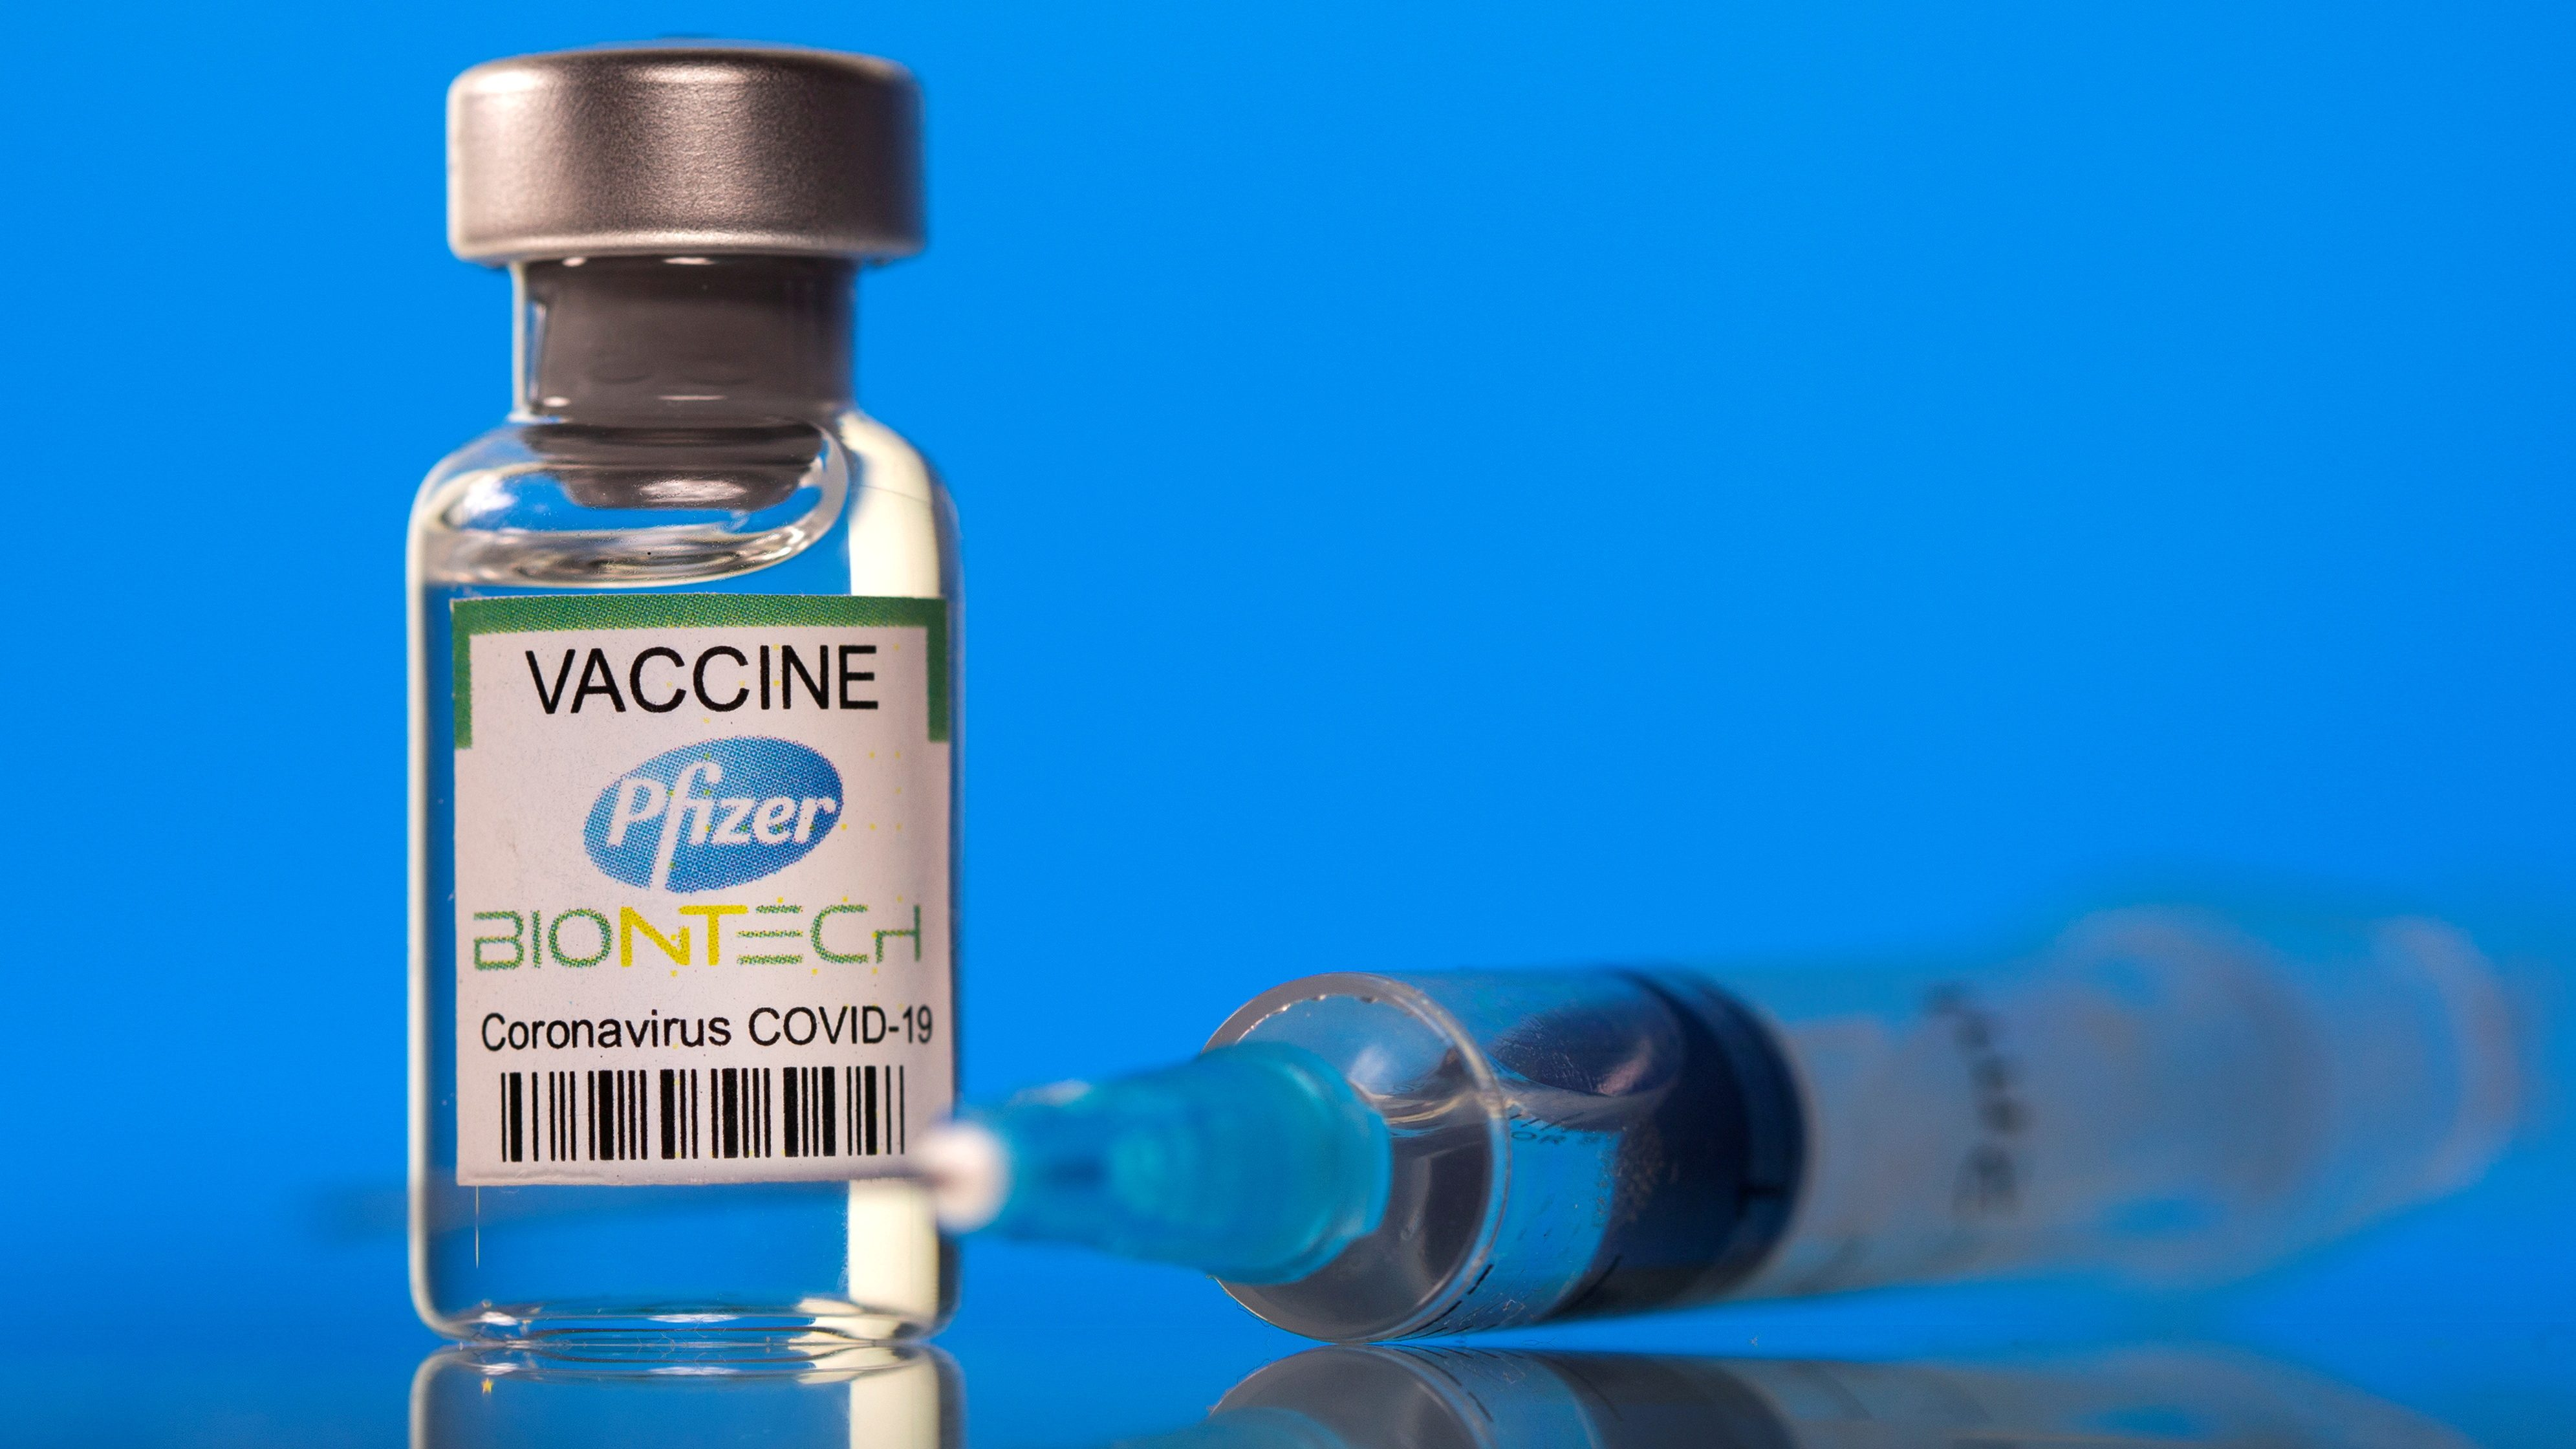 A vial labelled with the Pfizer-BioNTech Covid-19 vaccine.